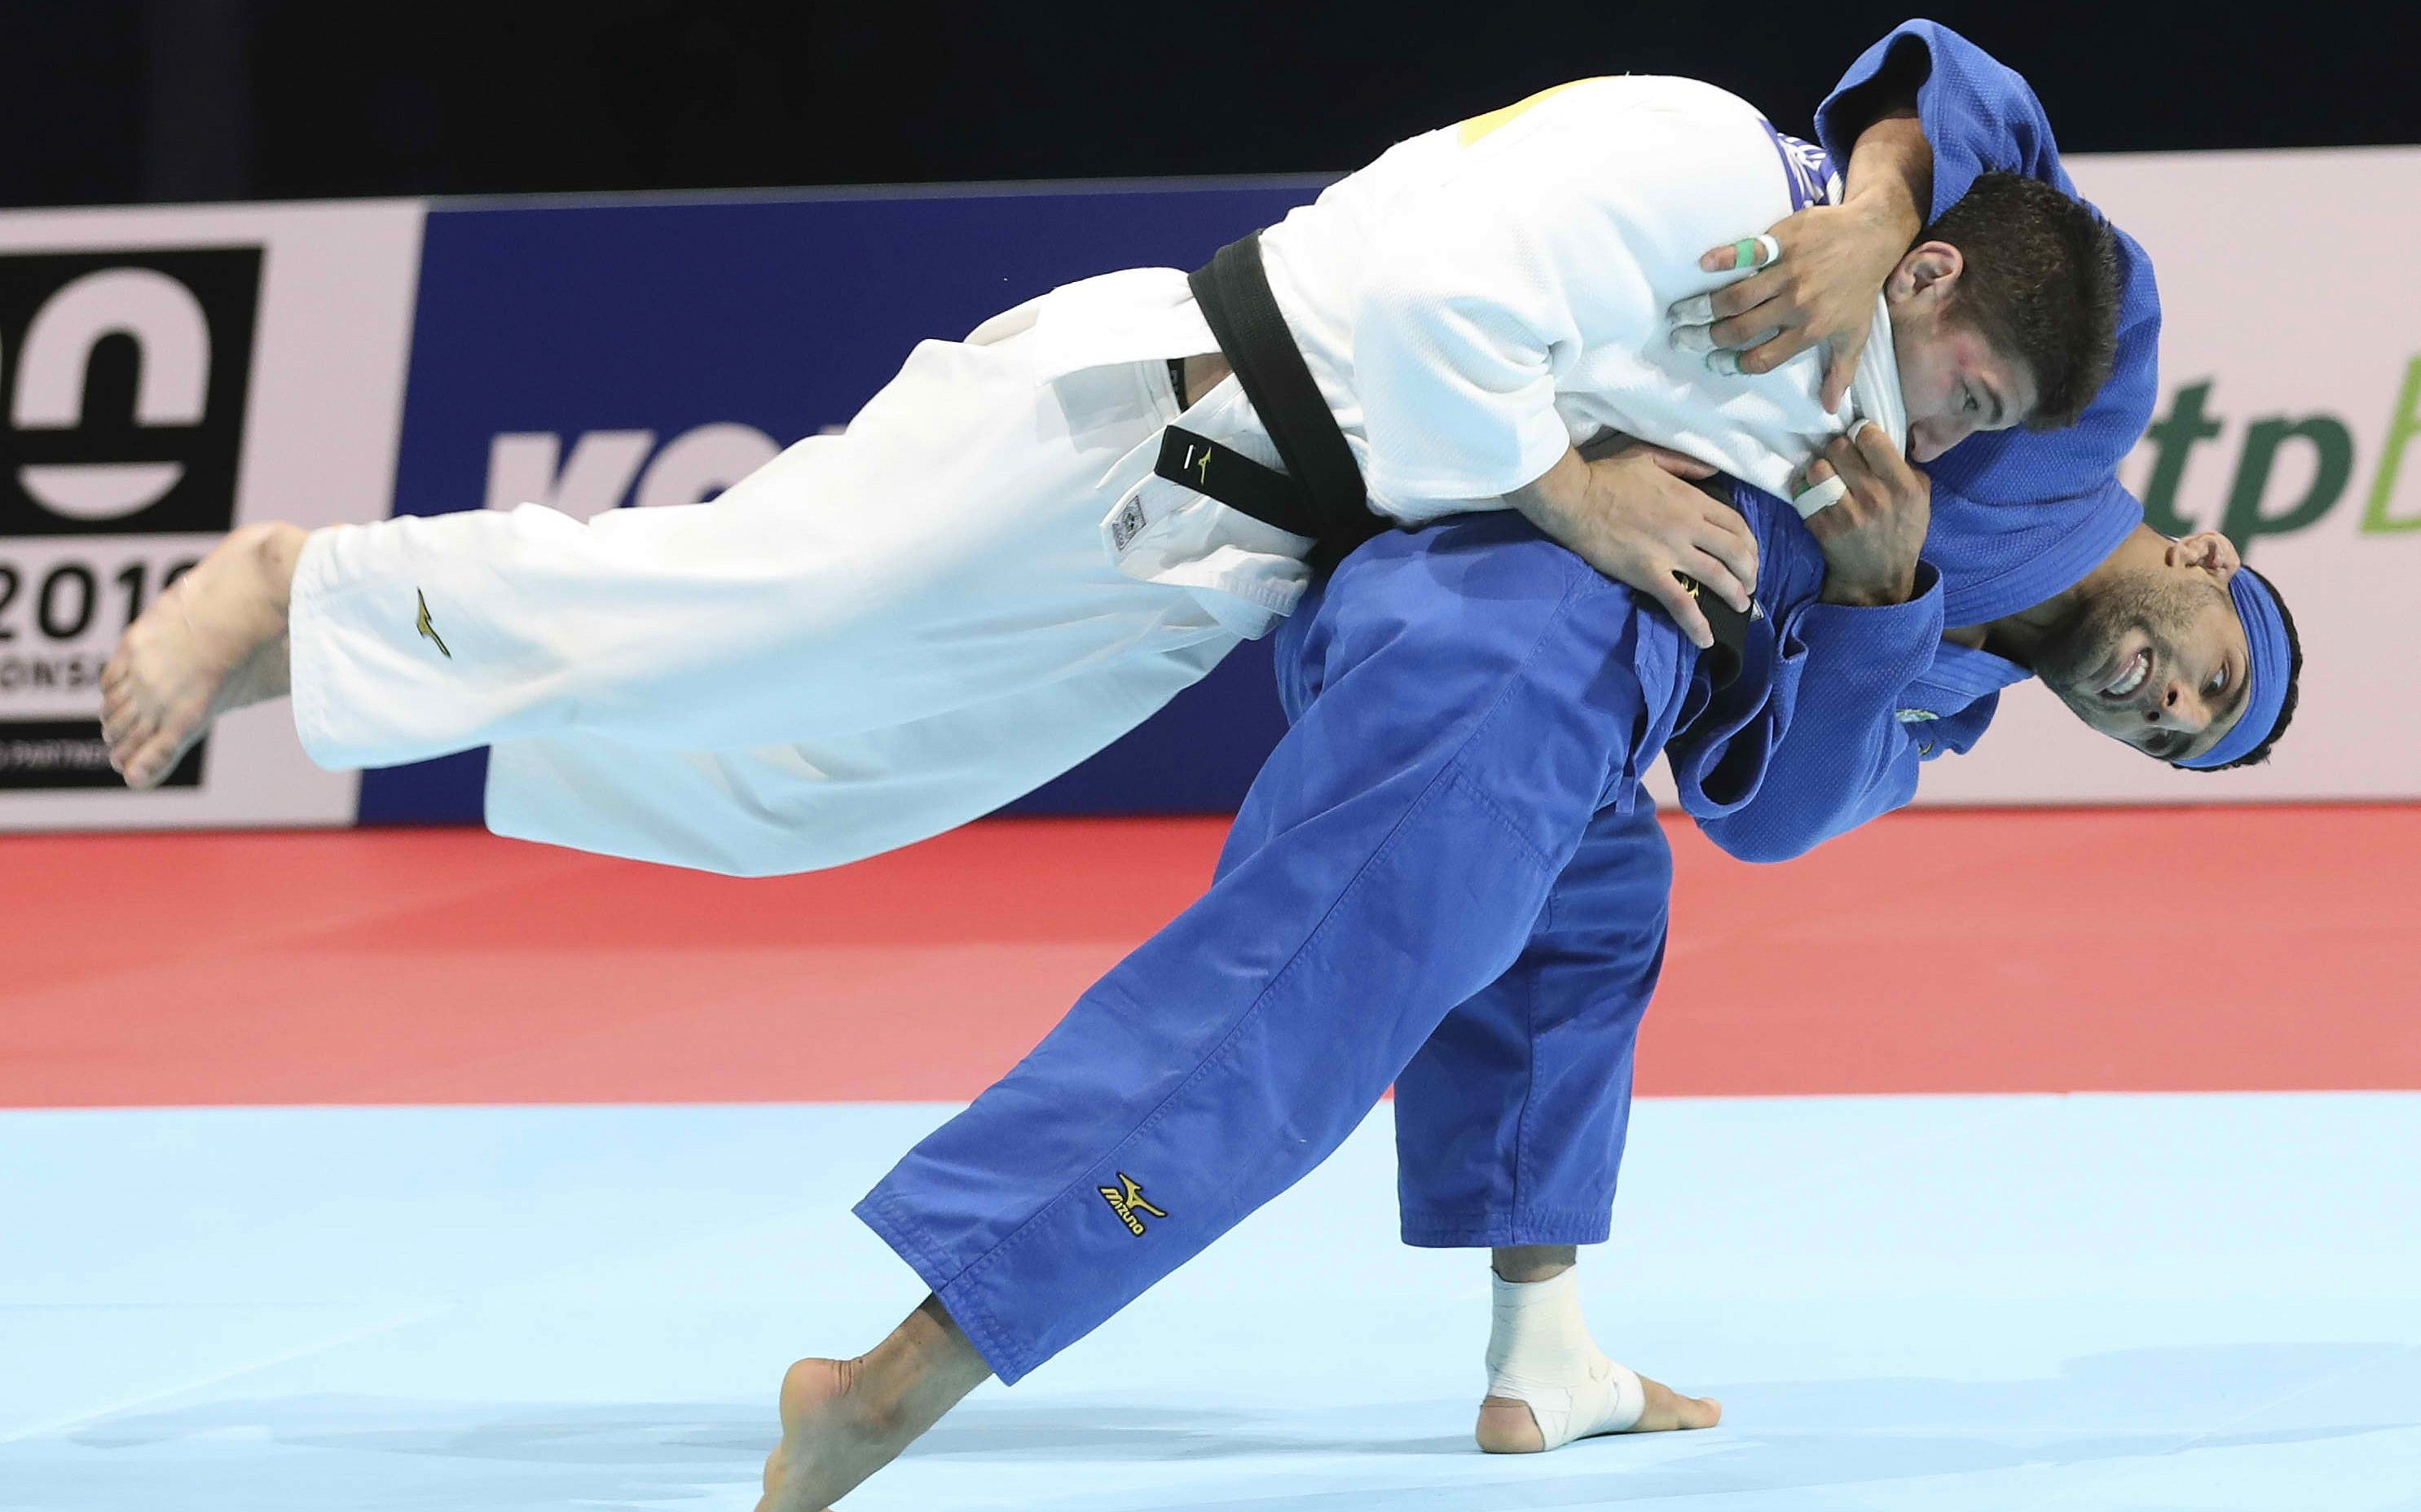 Iranian judoka allegedly coerced to avoid fight against